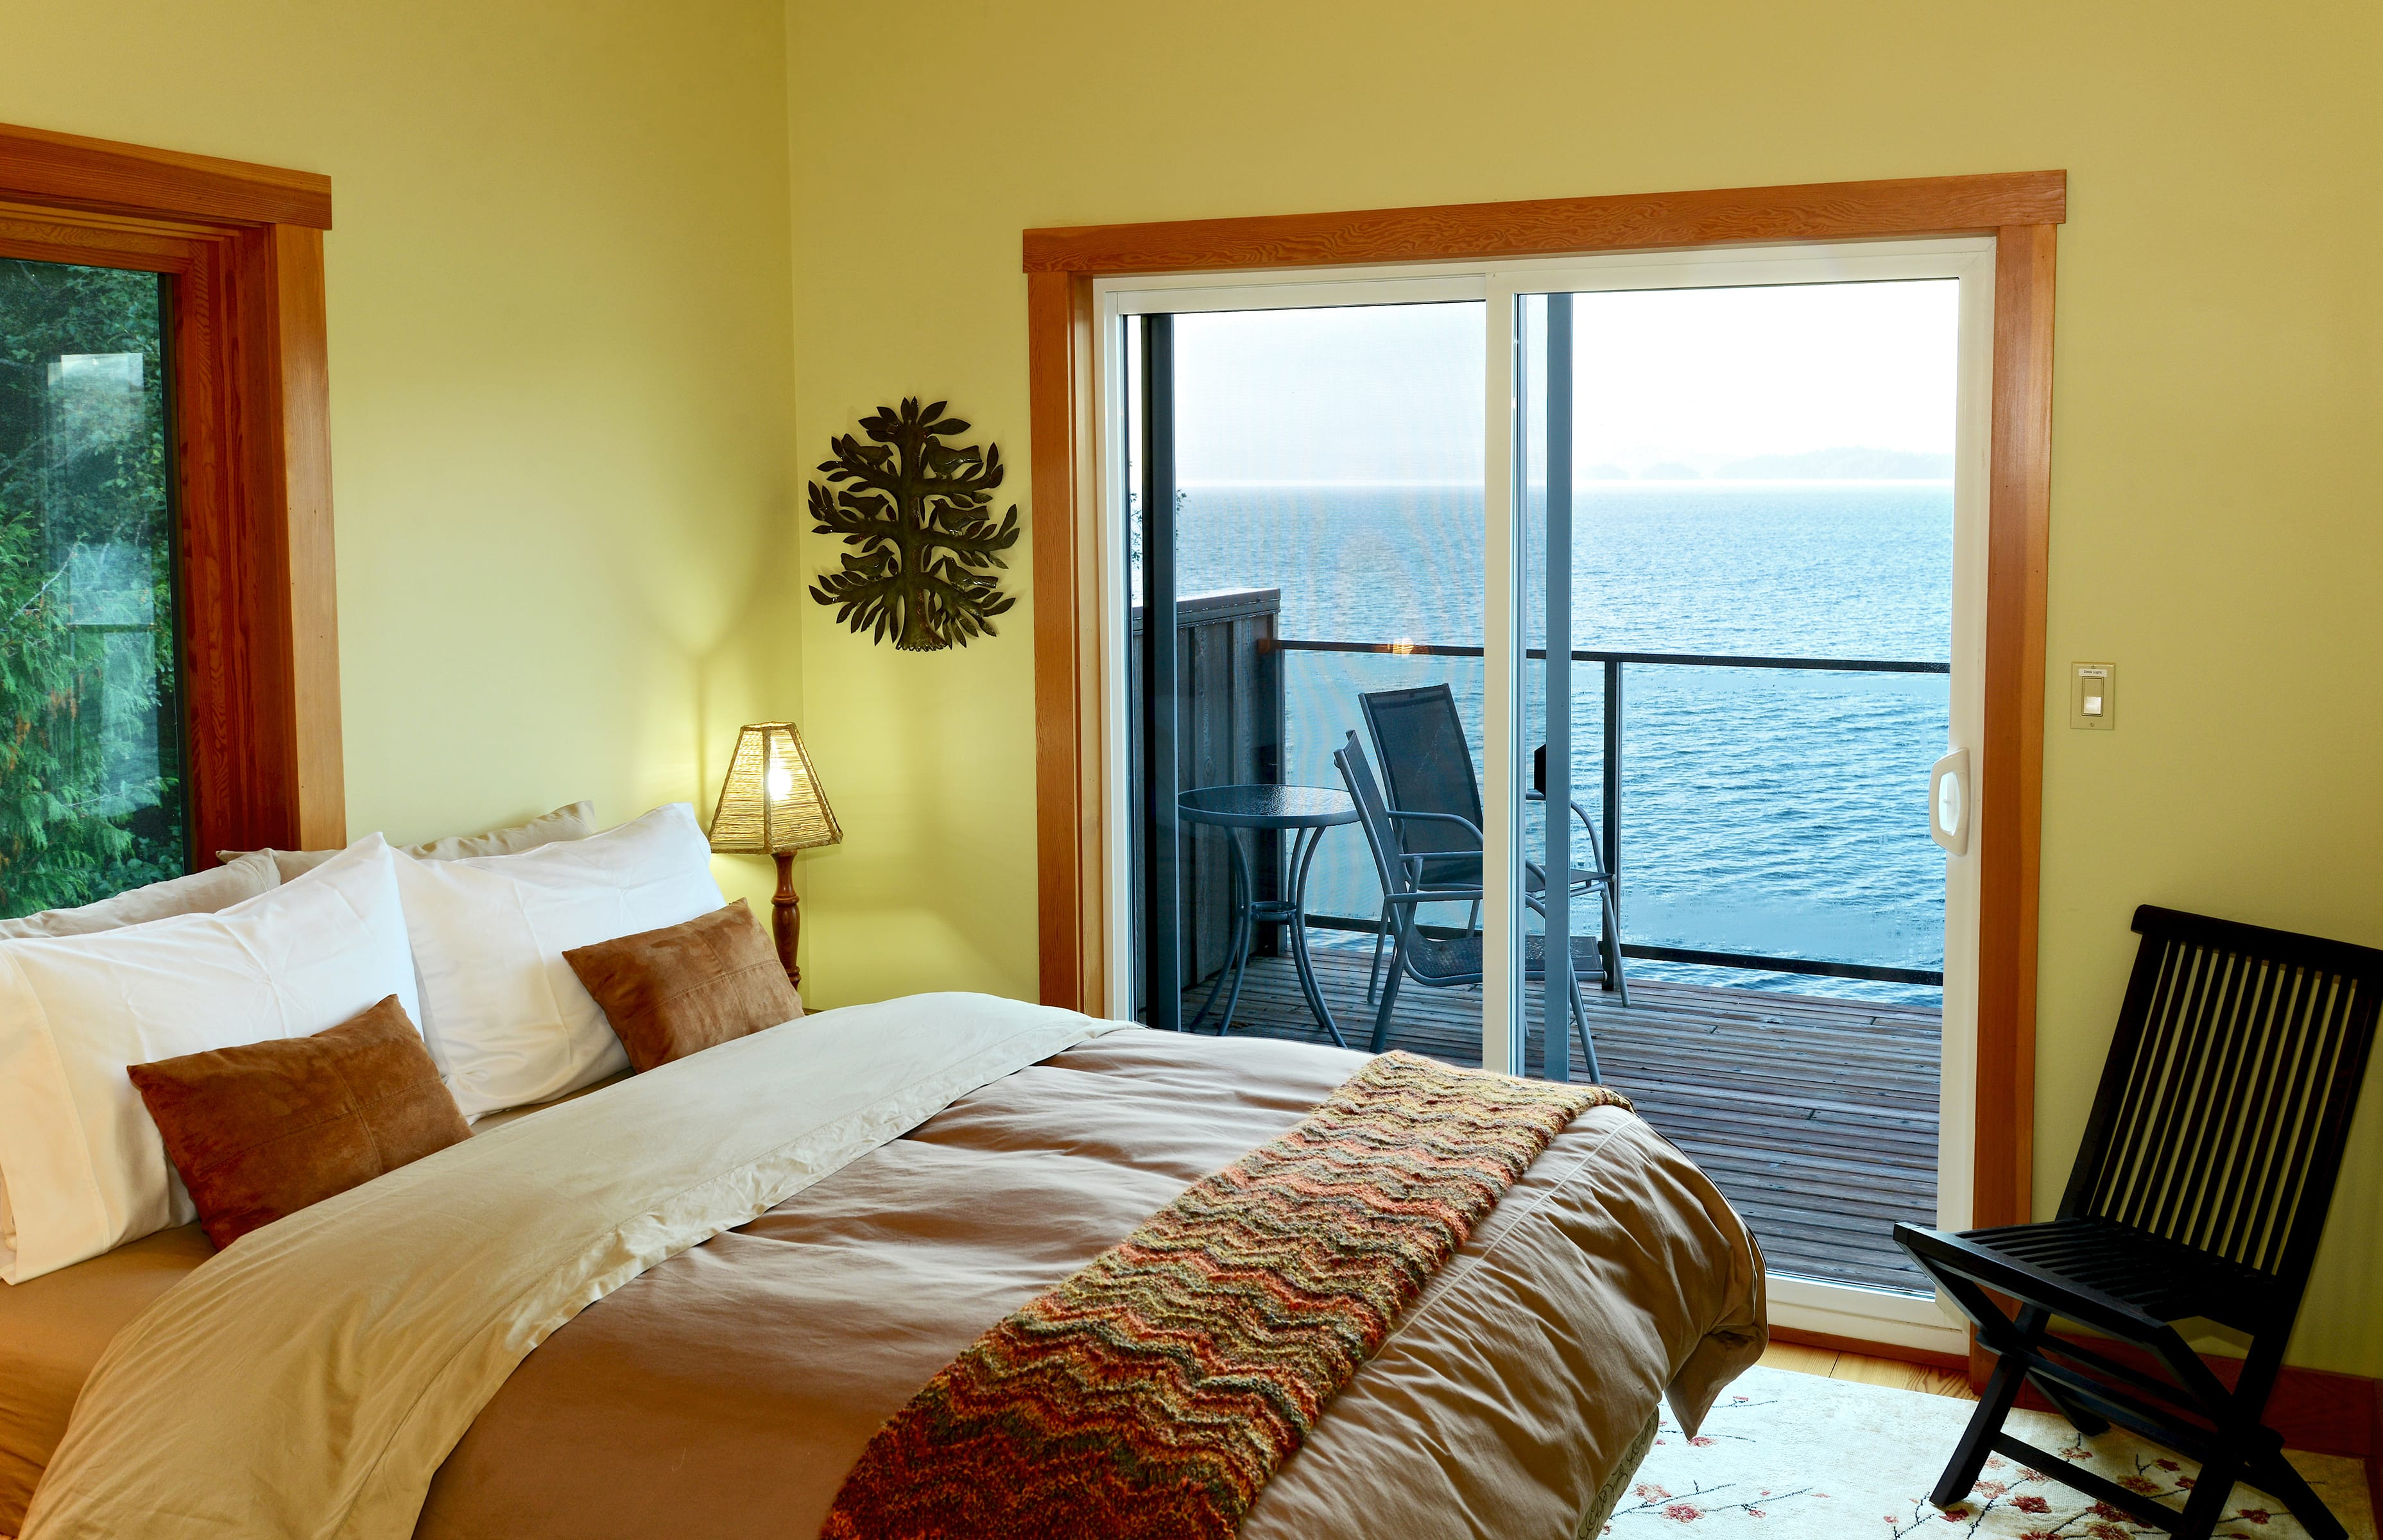 Queen bedrooms (3) with balcony and ocean views